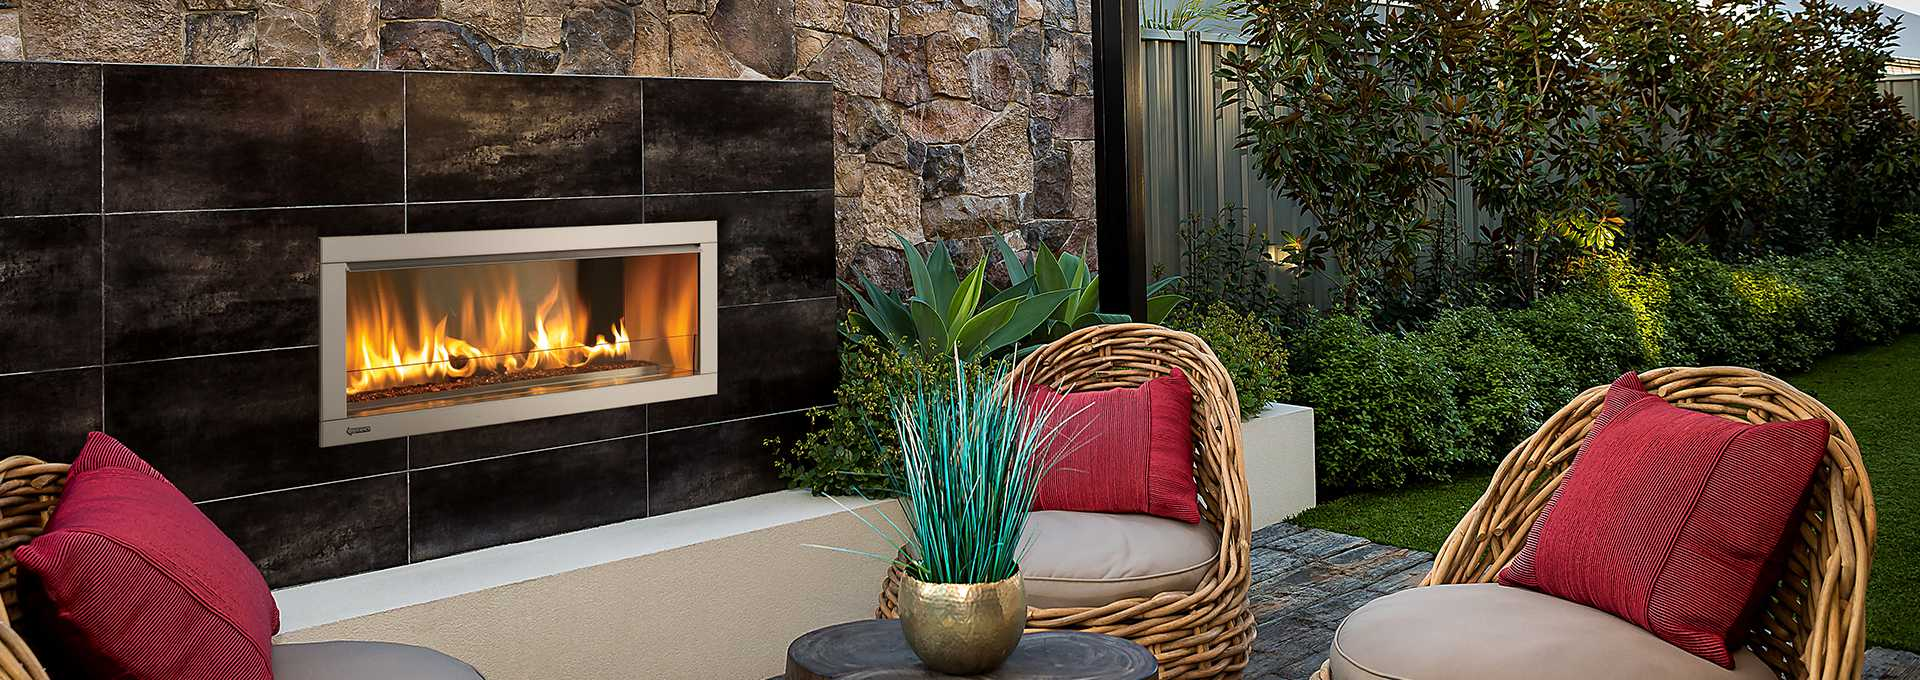 5 Essential Patio Upgrades